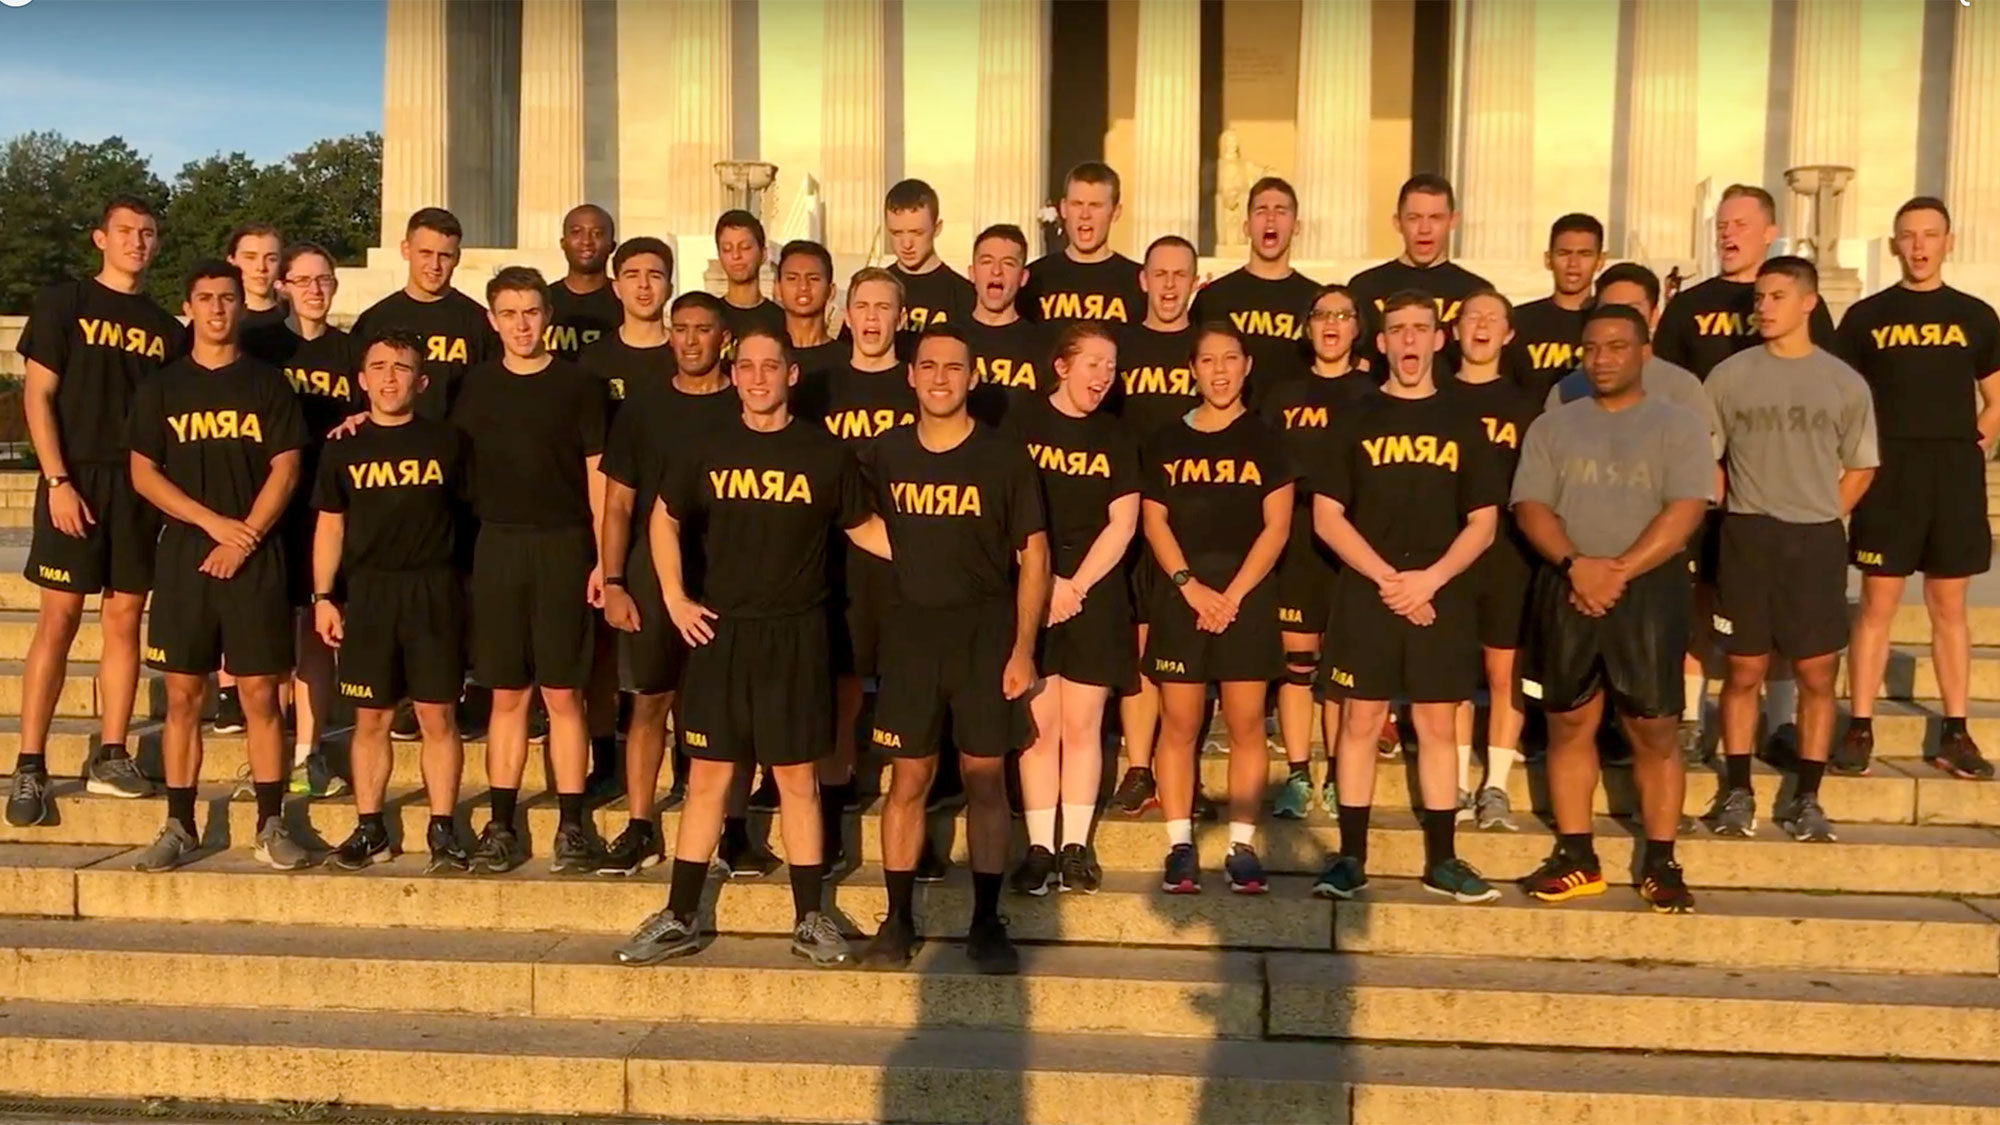 ROTC members dressed in running gear stand on steps with the sun rising in the background.